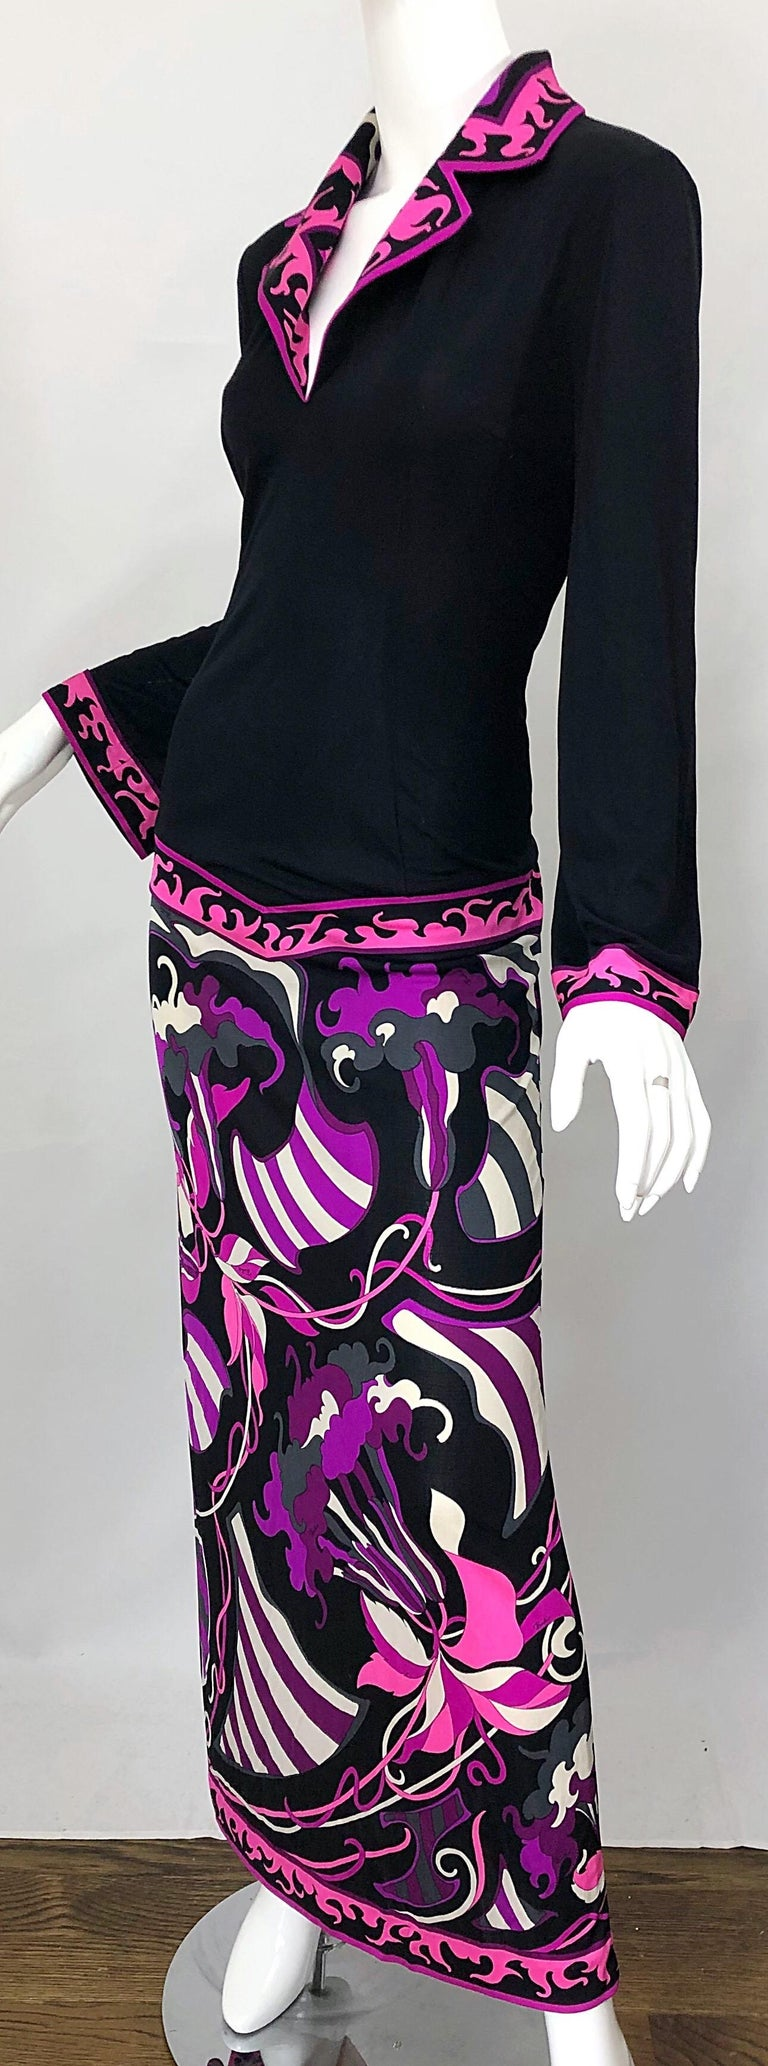 Emilio Pucci 1970s Silk Jersey Pink Purple Black Vintage 70s Maxi Dress For Sale 5